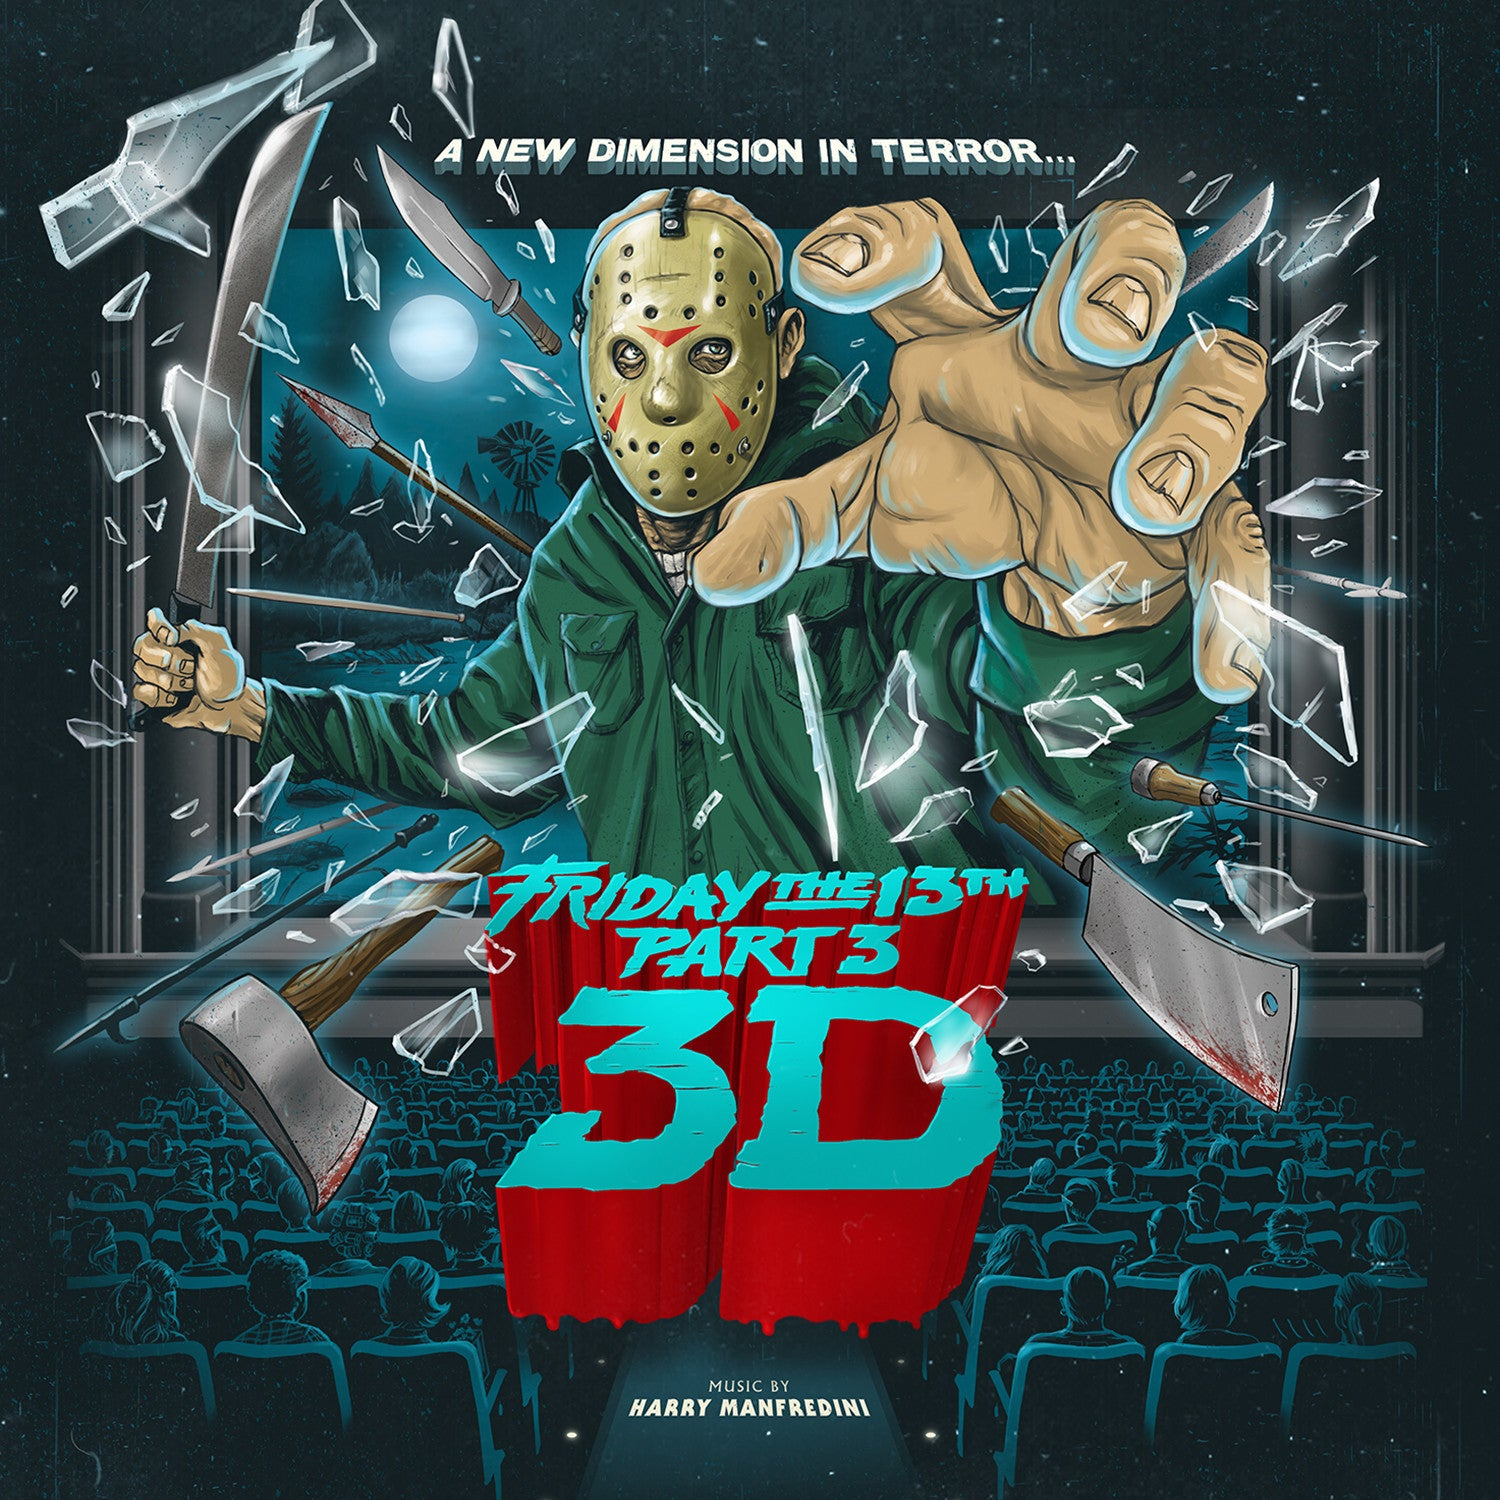 Harry Manfredini - Friday The 13th Part 3 3D OST LP